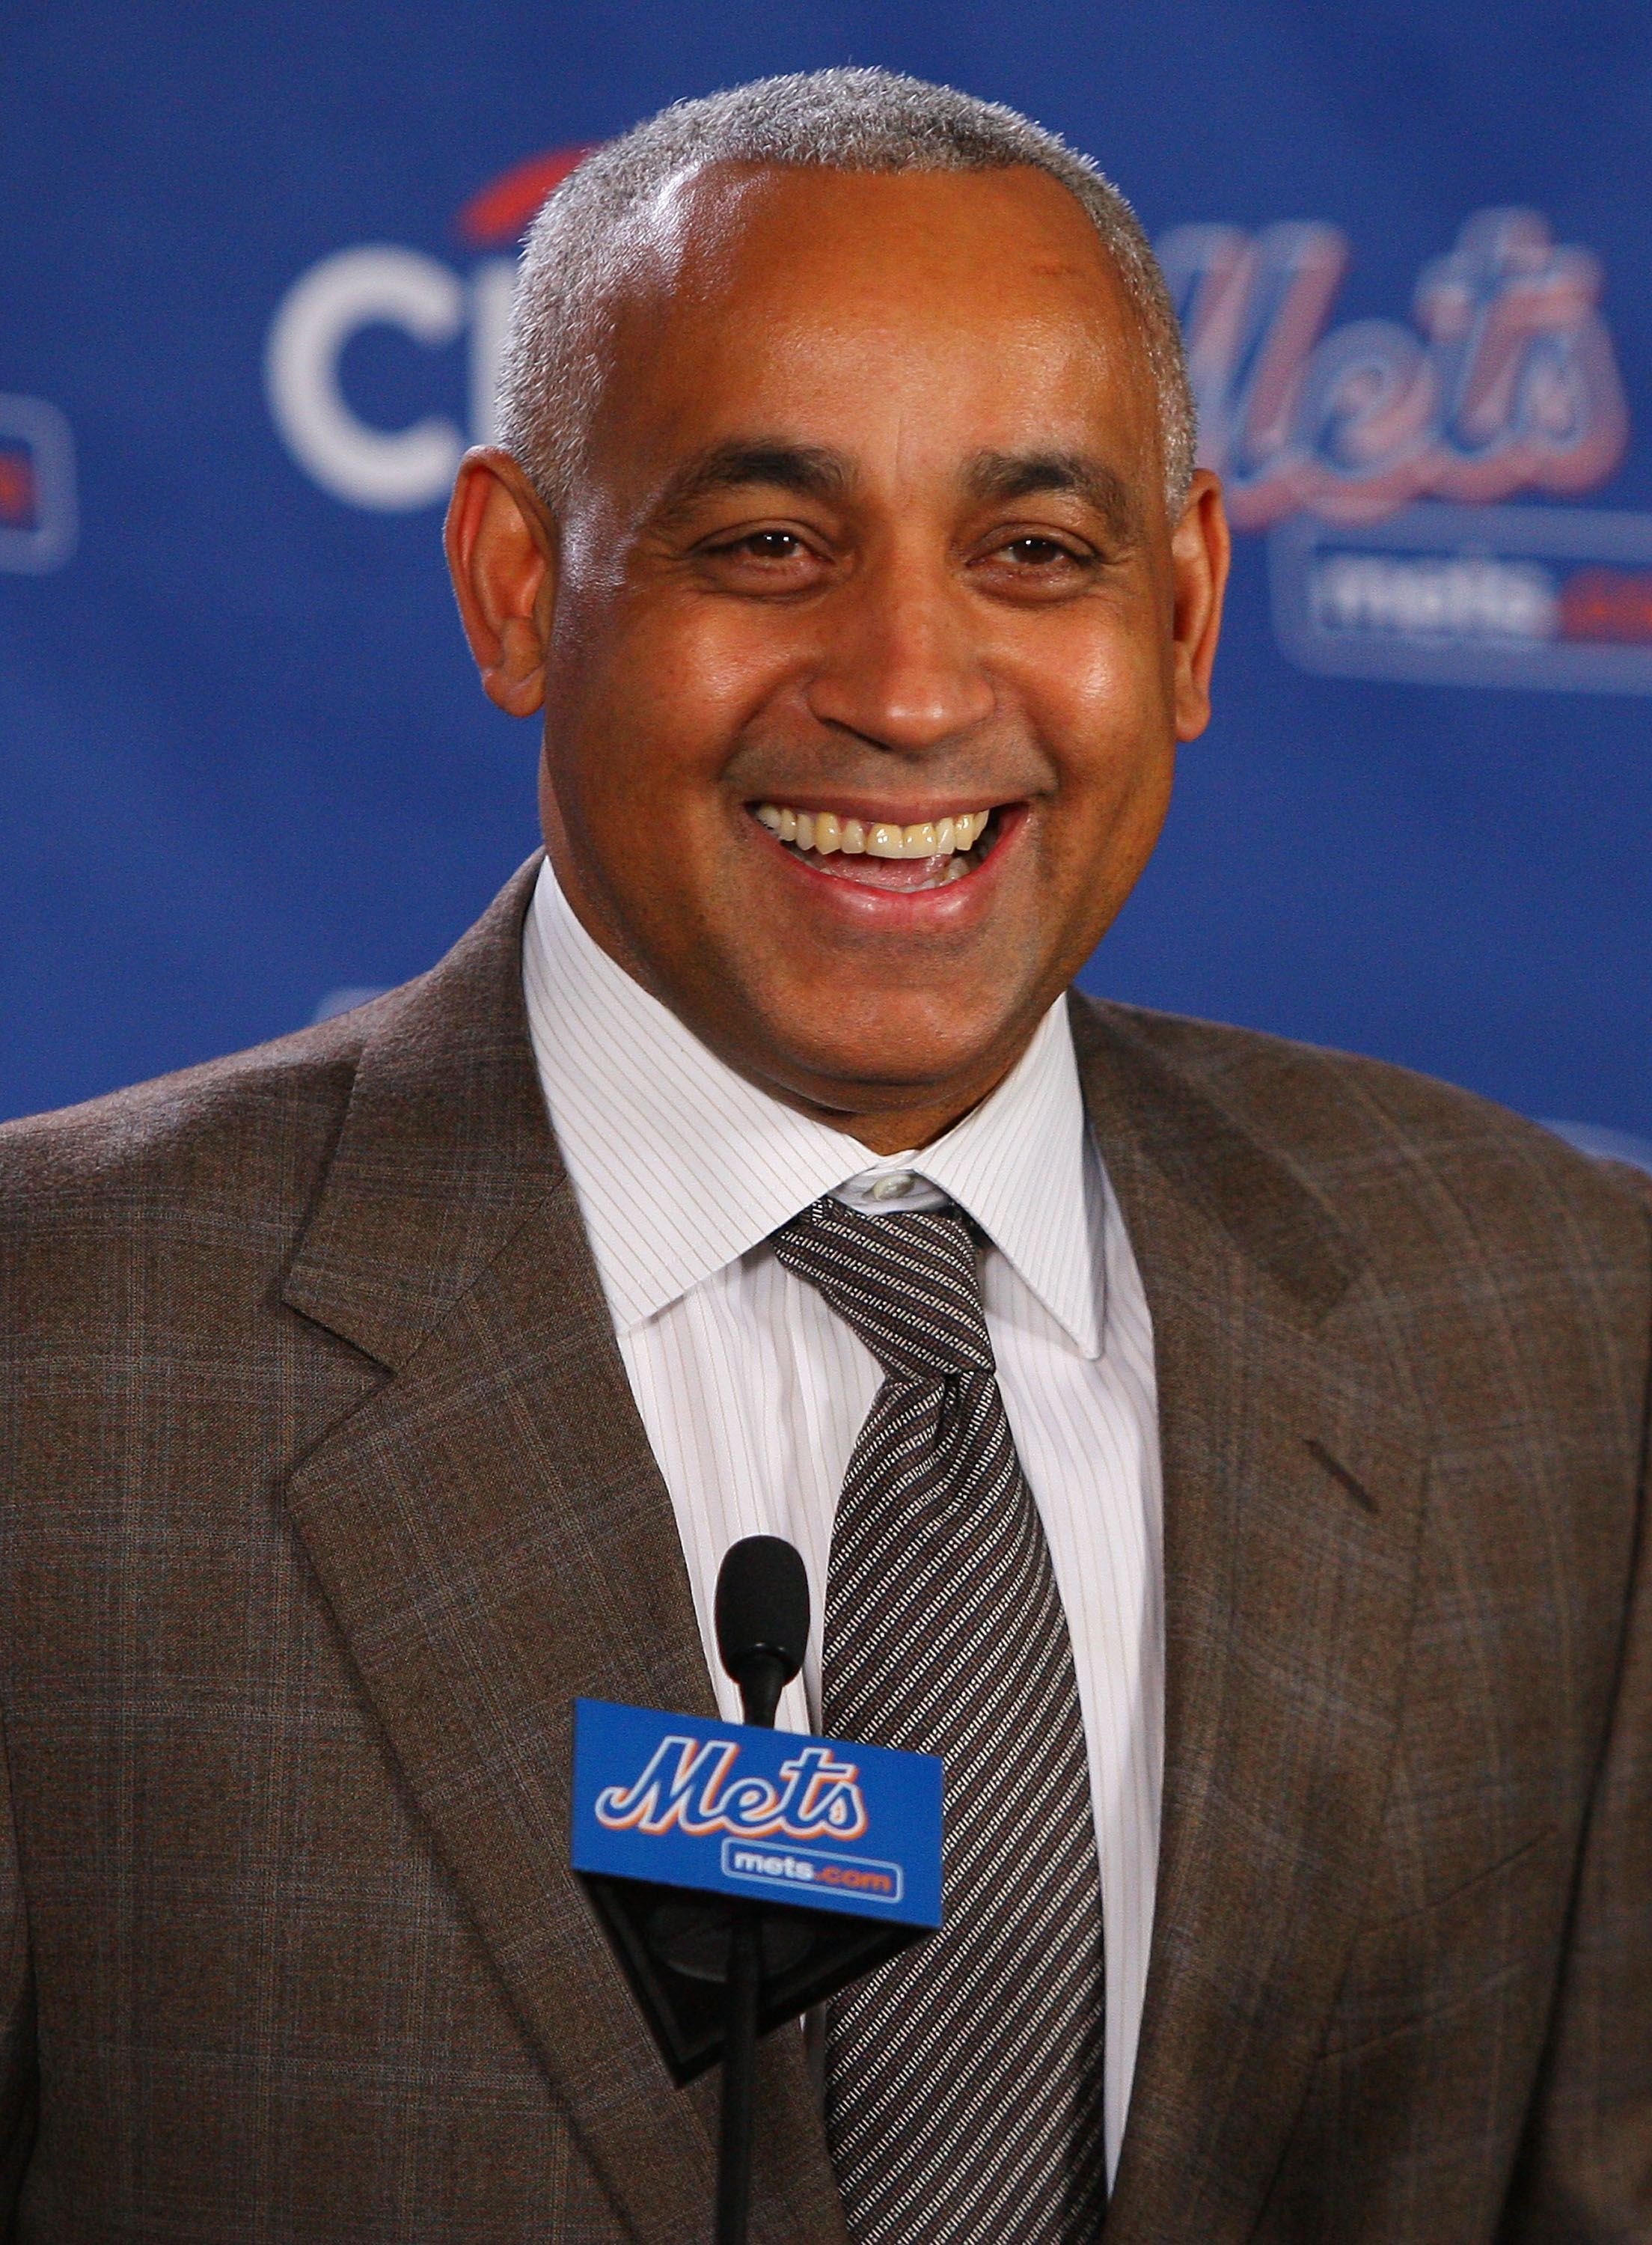 LONG ISLAND CITY, NY - DECEMBER 17:  New York Mets General Manager Omar Minaya speaks to the media during a press conference to introduce Francisco Rodriquez on December 17, 2008 at the Citigroup Building in New York City.  (Photo by Mike Stobe/Getty Imag